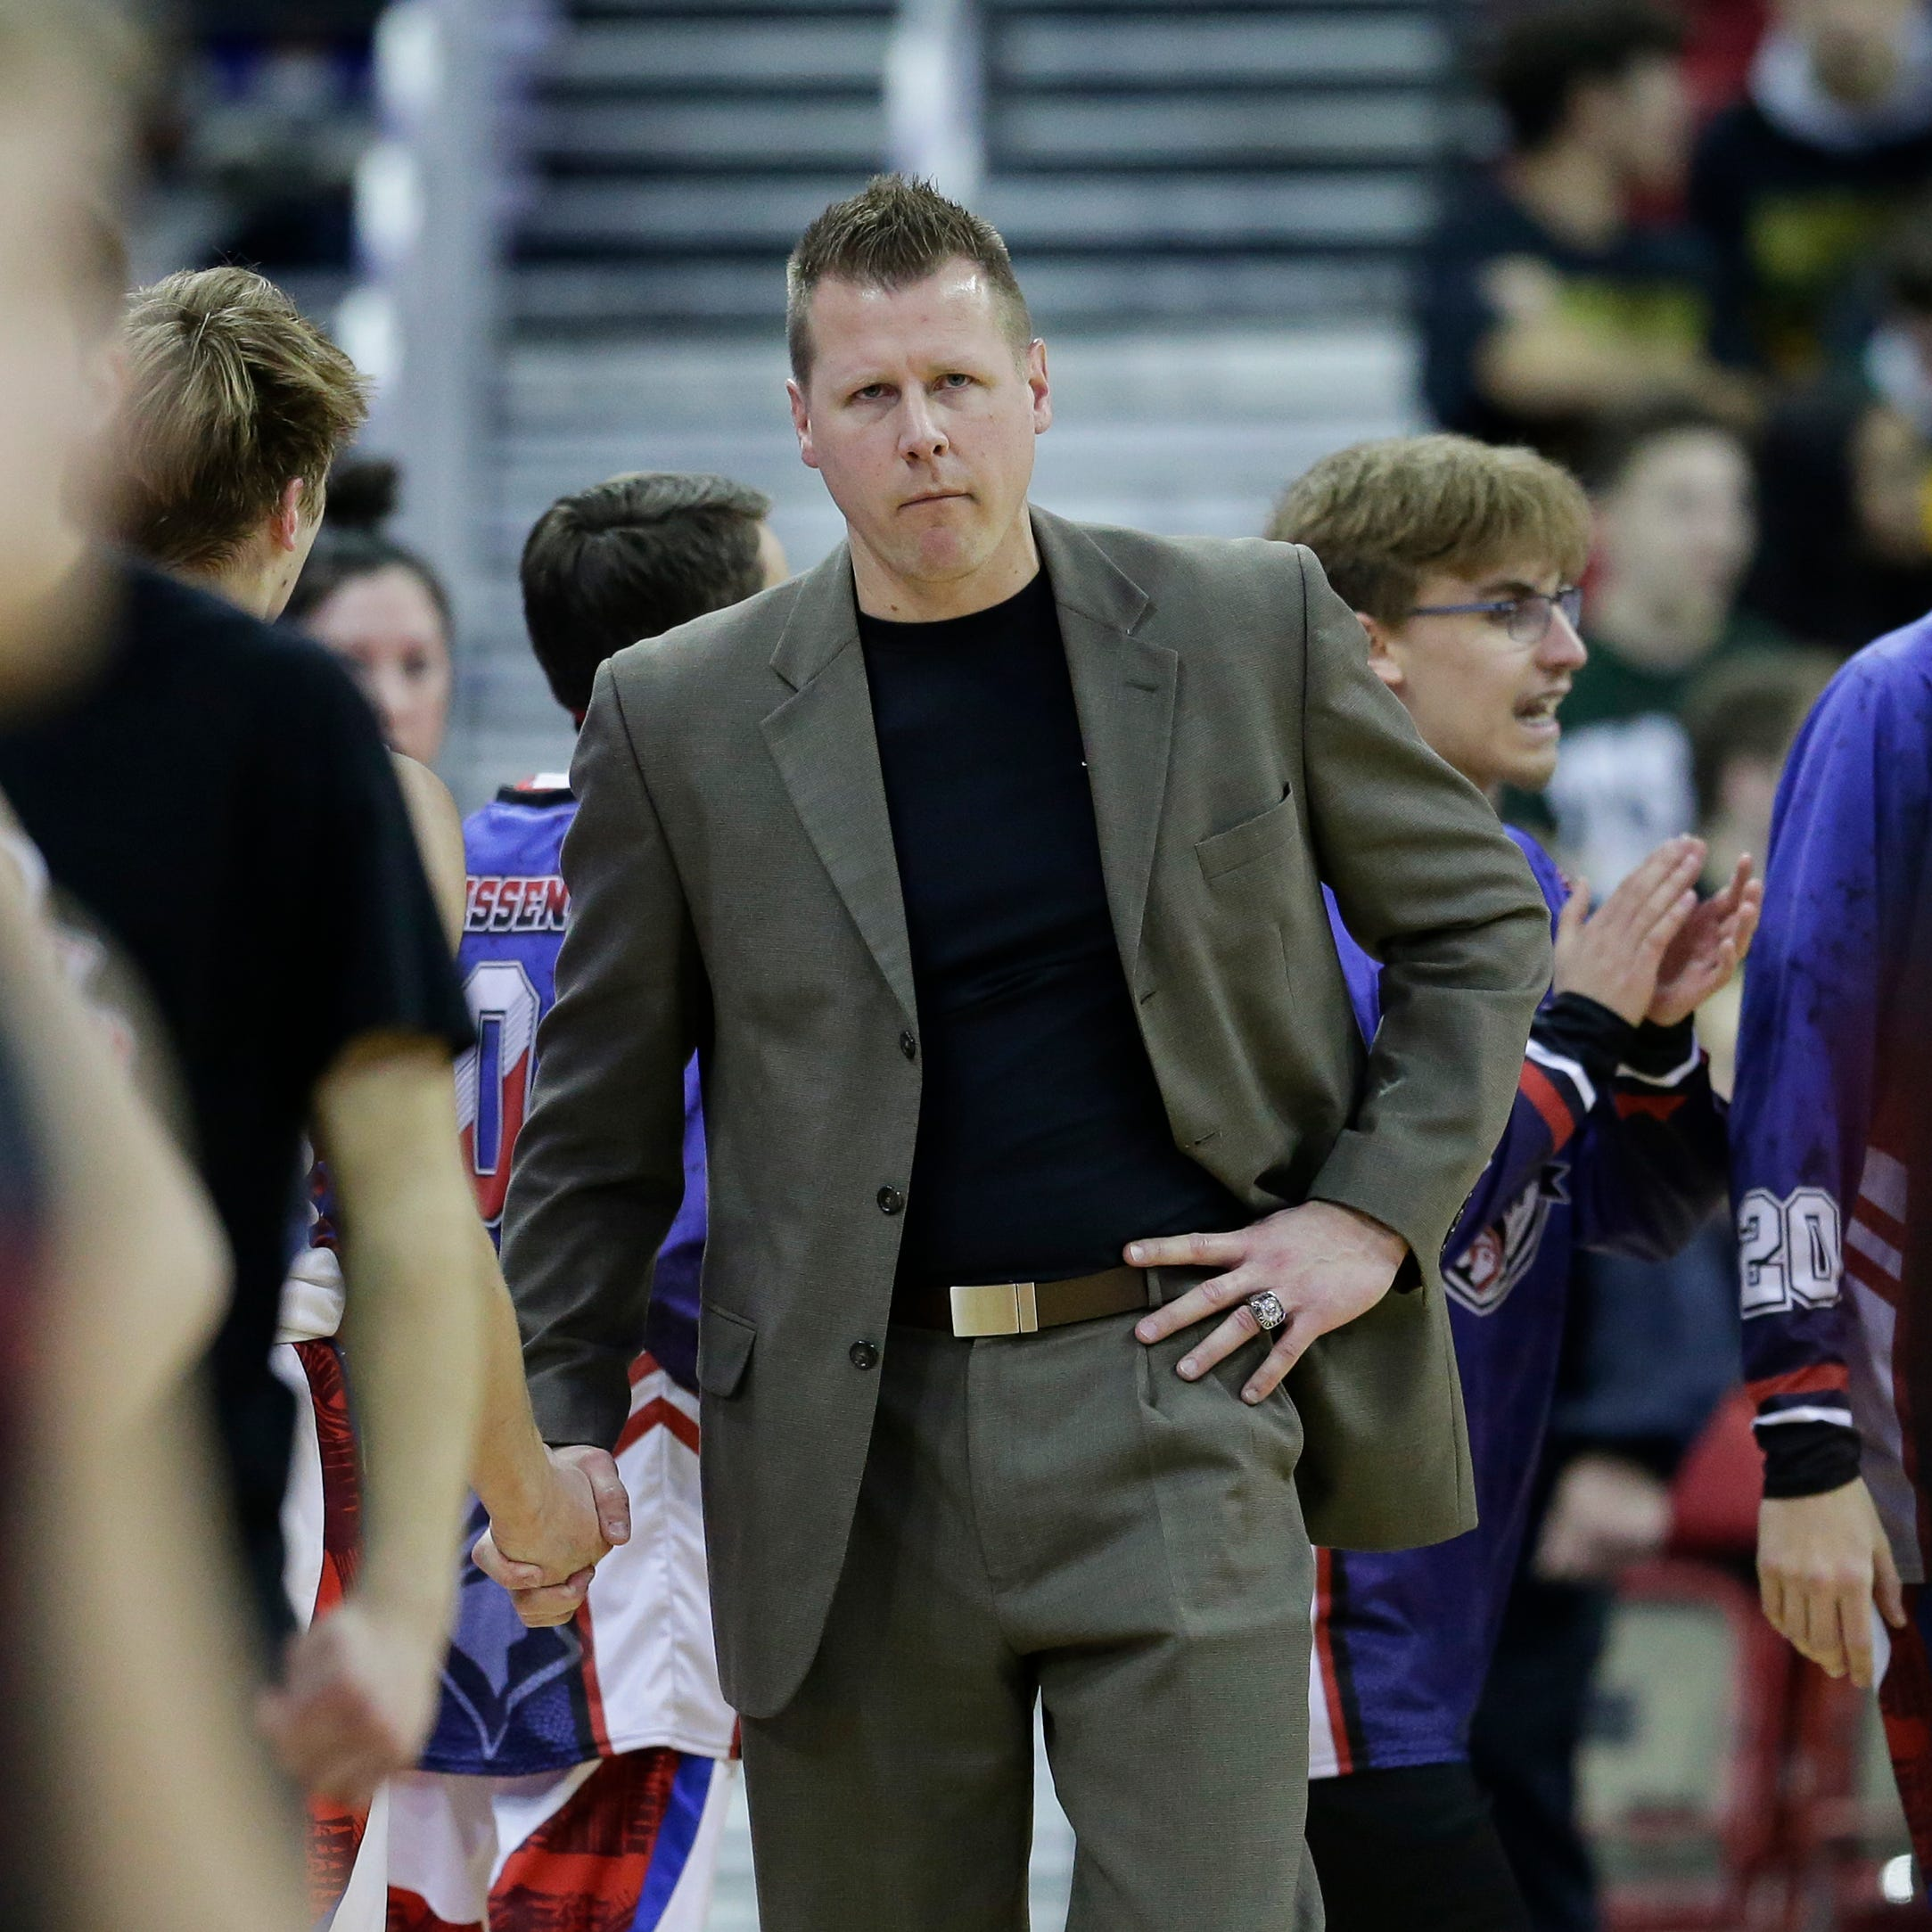 Lourdes Academy boys basketball coach Brad Clark steps down from program